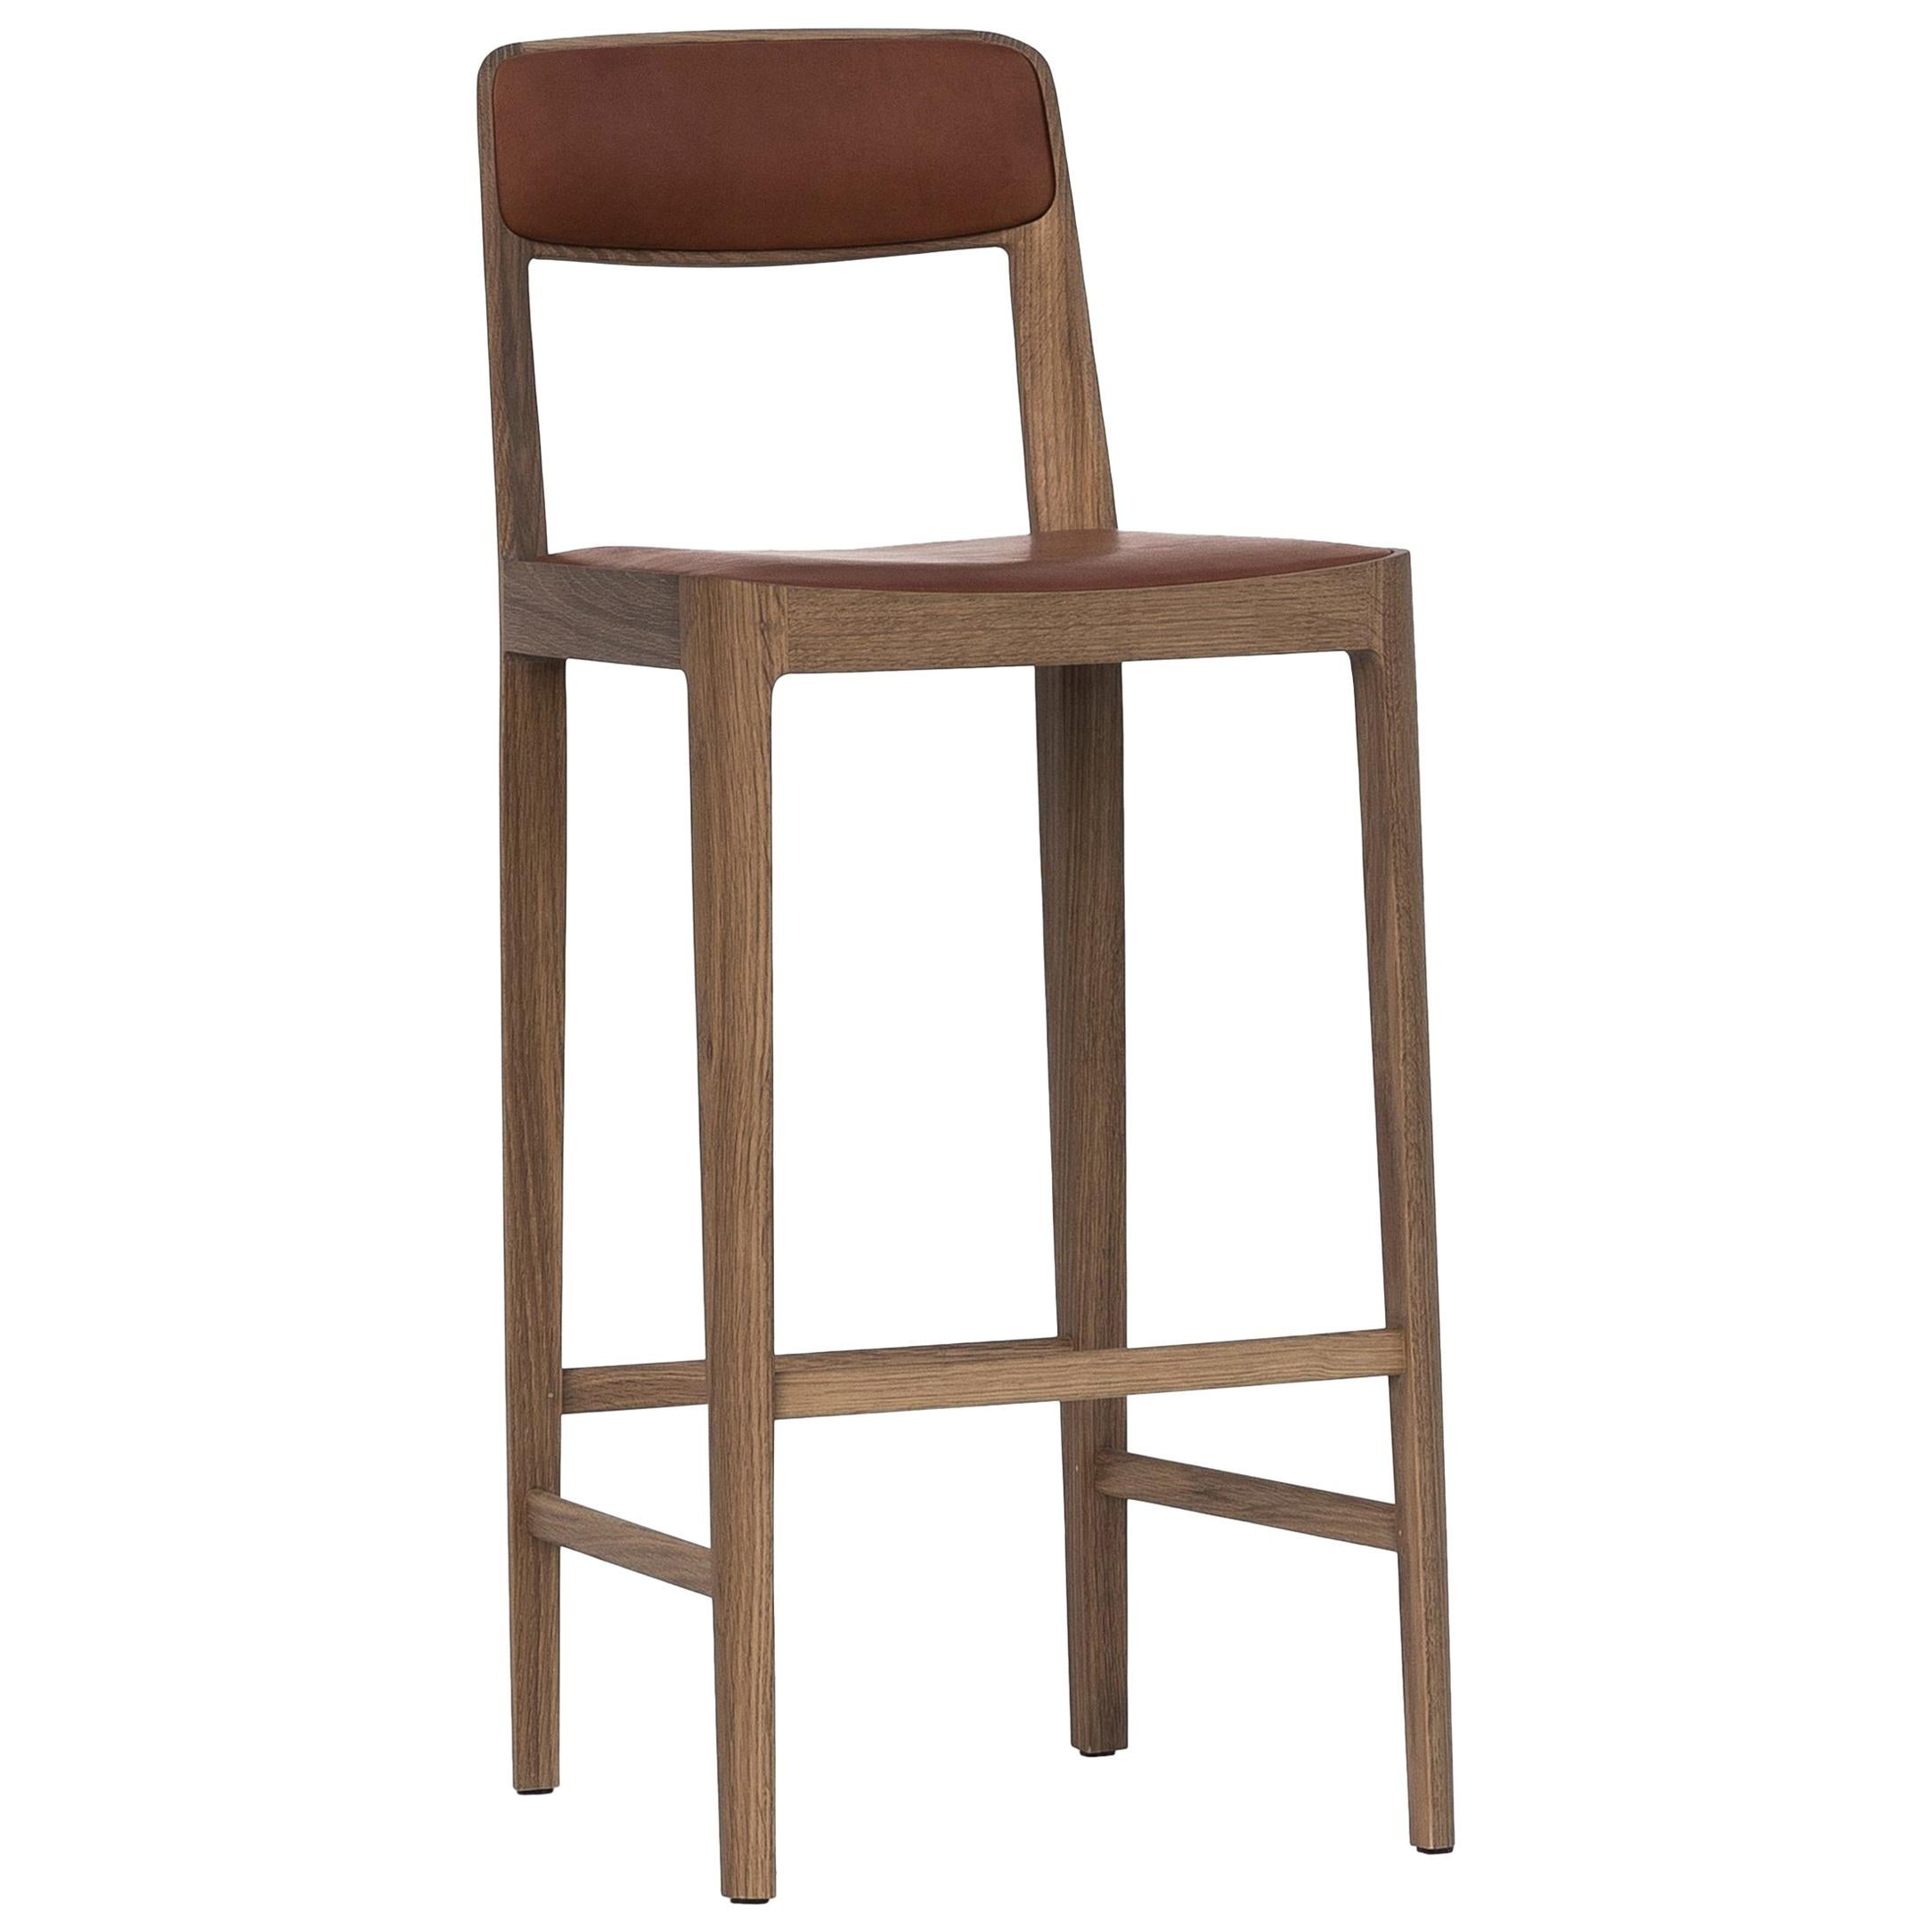 """Linea Barstool White Oak """"White"""" with """"Chestnut"""" Leather Upholstery"""